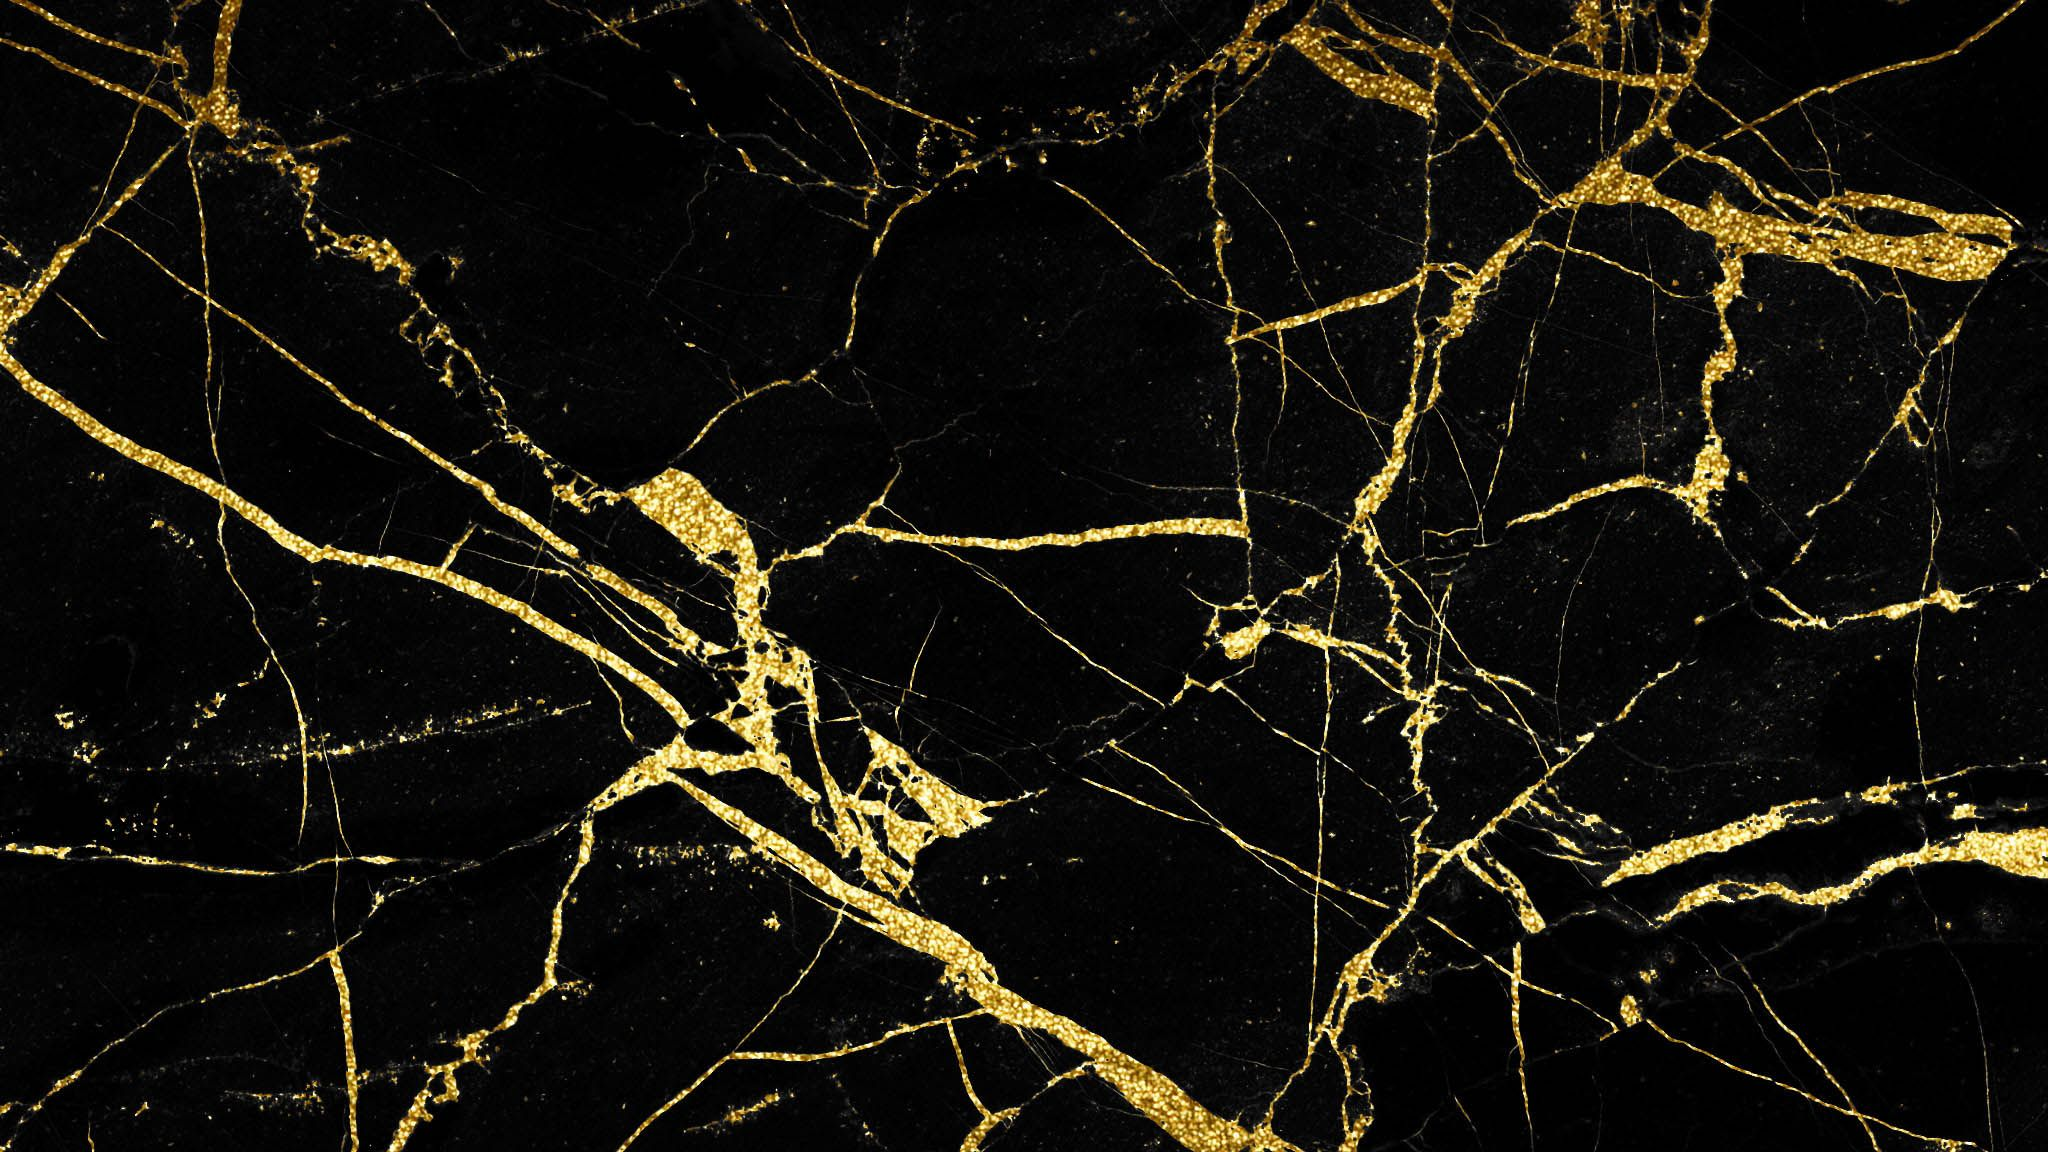 Free Download Black Marble Photos. Marble wallpaper hd